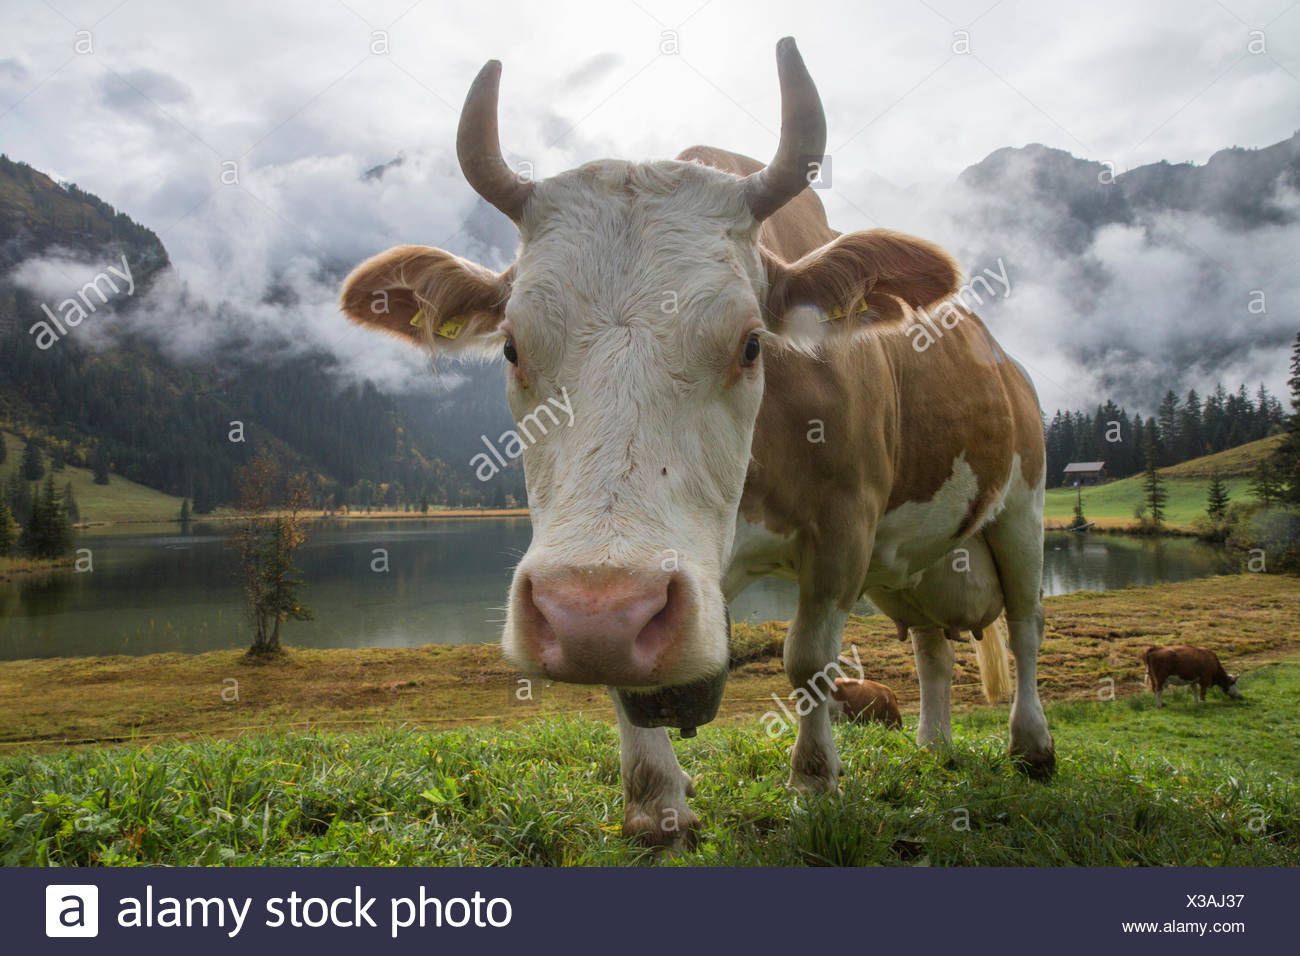 Lauenensee, cows, mountain lake, cow, cows, agriculture, animals, animal, canton Bern, Bernese Oberland, Switzerland, Europe, - Stock Image